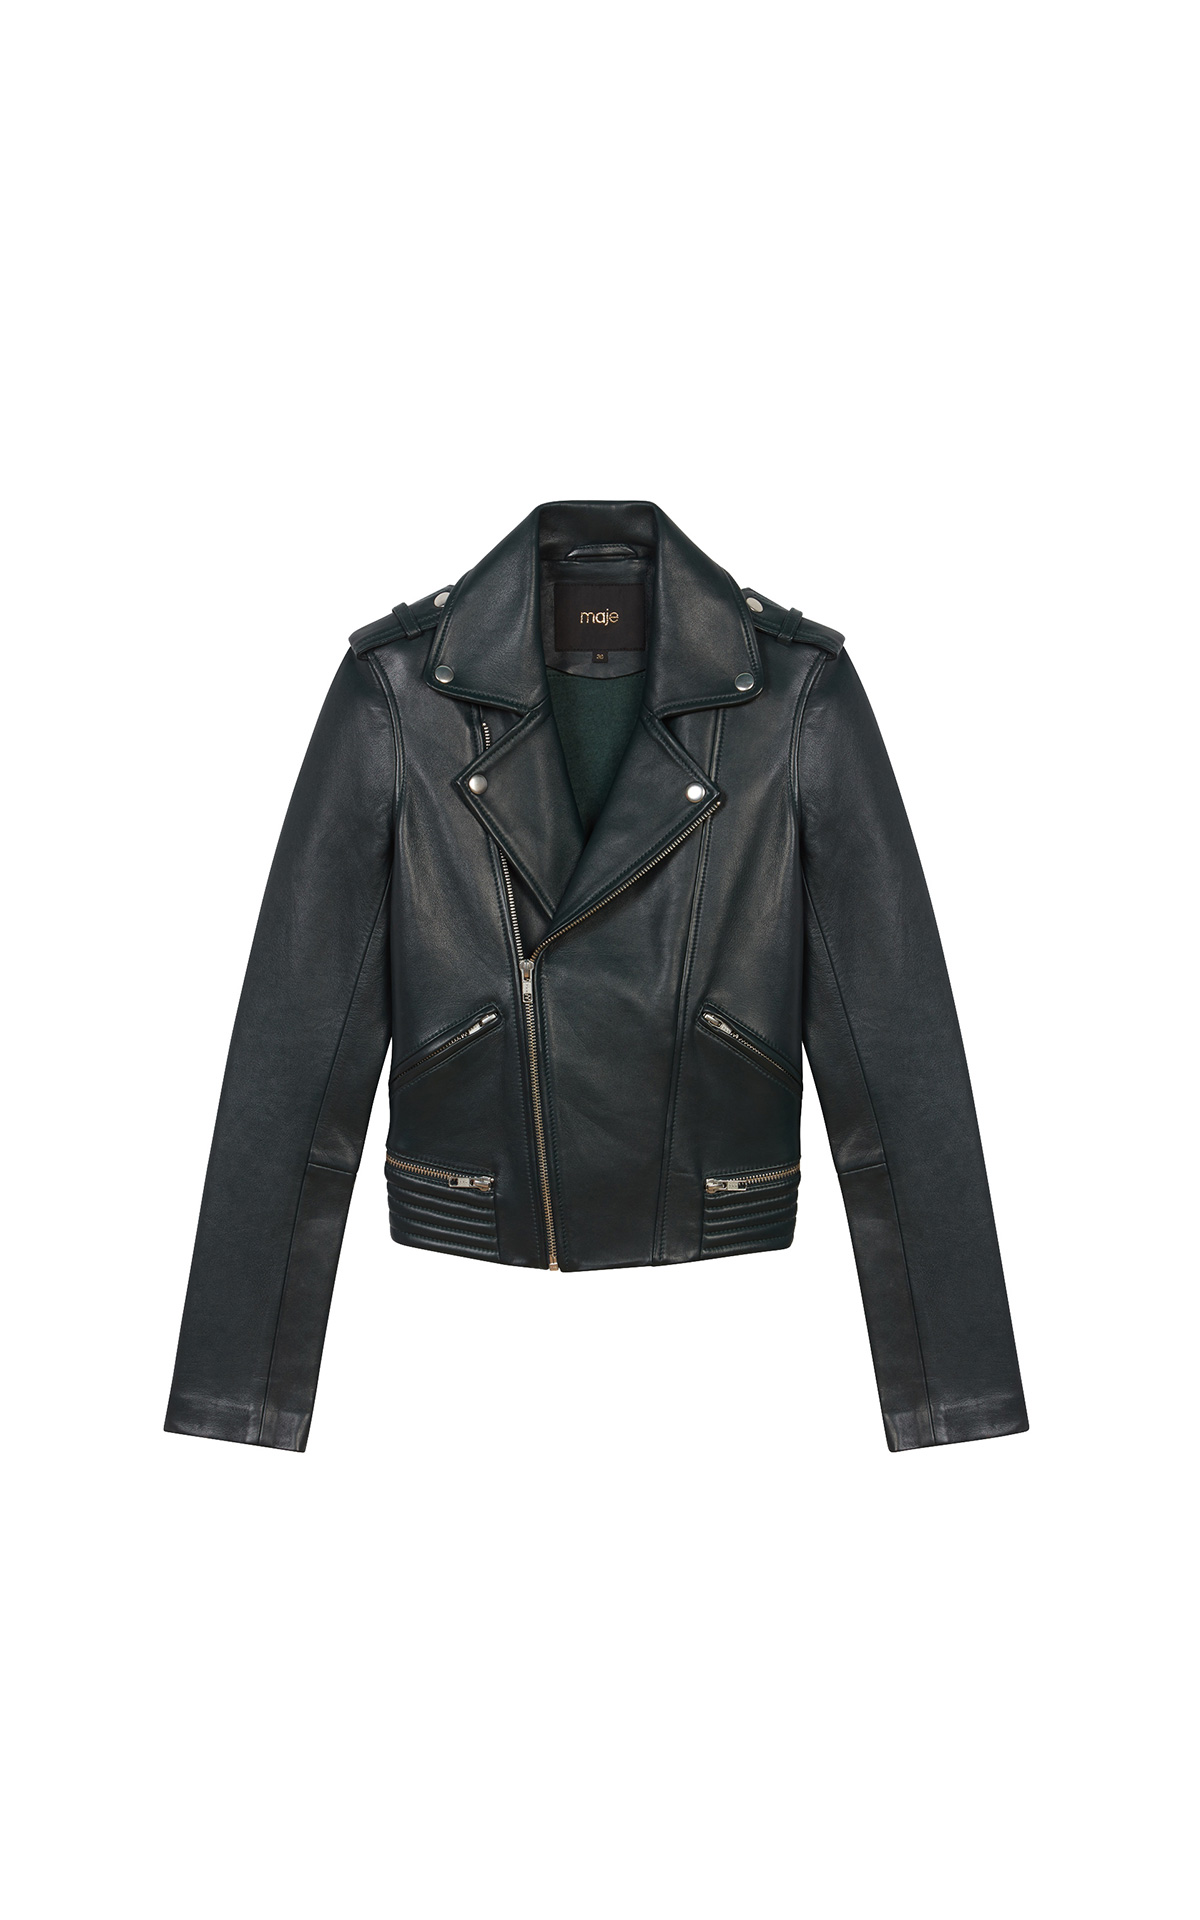 Maje Black Leather Jacket at The Bicester Village Shopping Collection